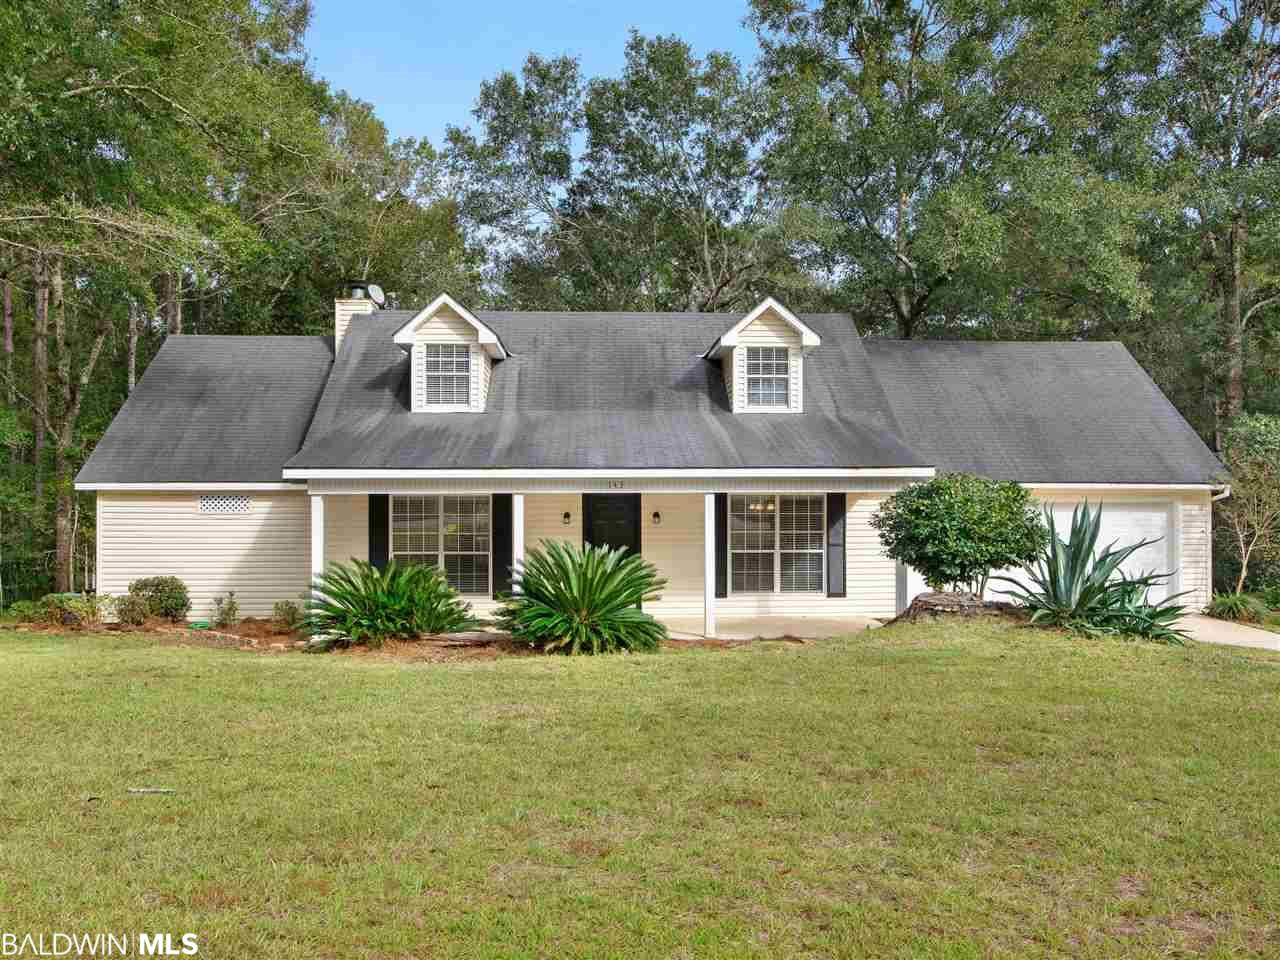 This well designed home has everything and is ready to move right in.  Located in Plantation Hills subdivision this property is open and spacious.  The downstairs has a large great room that is accented by a painted brick fireplace. and great views of the back yard and deck.  Just off the great room is the morning room that leads into the kitchen and has large windows that allow in natural lighting. Custom tile floors make this an easy house to clean and maintain. The kitchen comes with Stainless Steel appliances, loads of cabinets and storage.  Just off the kitchen is the double car garage and utility room.  The upstairs is well designed to include multiple bedrooms and a bath as well as storage for all of your stuff.  Outside is a nice front landscaped yard and the in the back is a multi tier deck, a separate doll house storage shed and a lot of room for the pets.  Located in the Spanish Fort school district, close to shopping, medical facilities and I-10 for a quick ride to both Pensacola, Fl and Mobile, Al. The house is super easy to view and available for immediate occupancy.